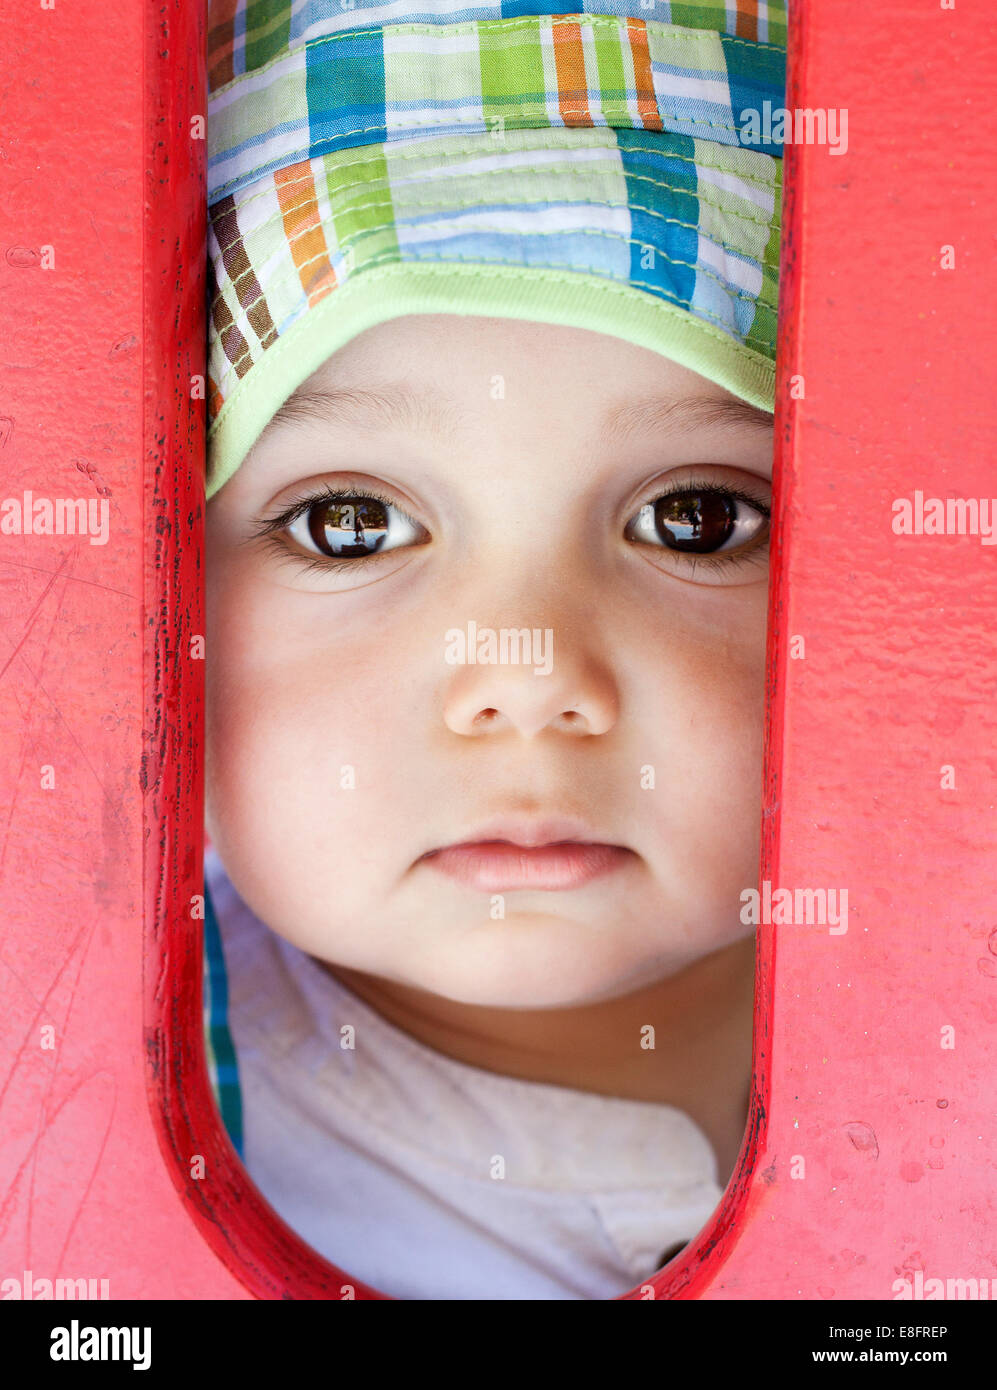 Portrait of a girl looking through railings - Stock Image